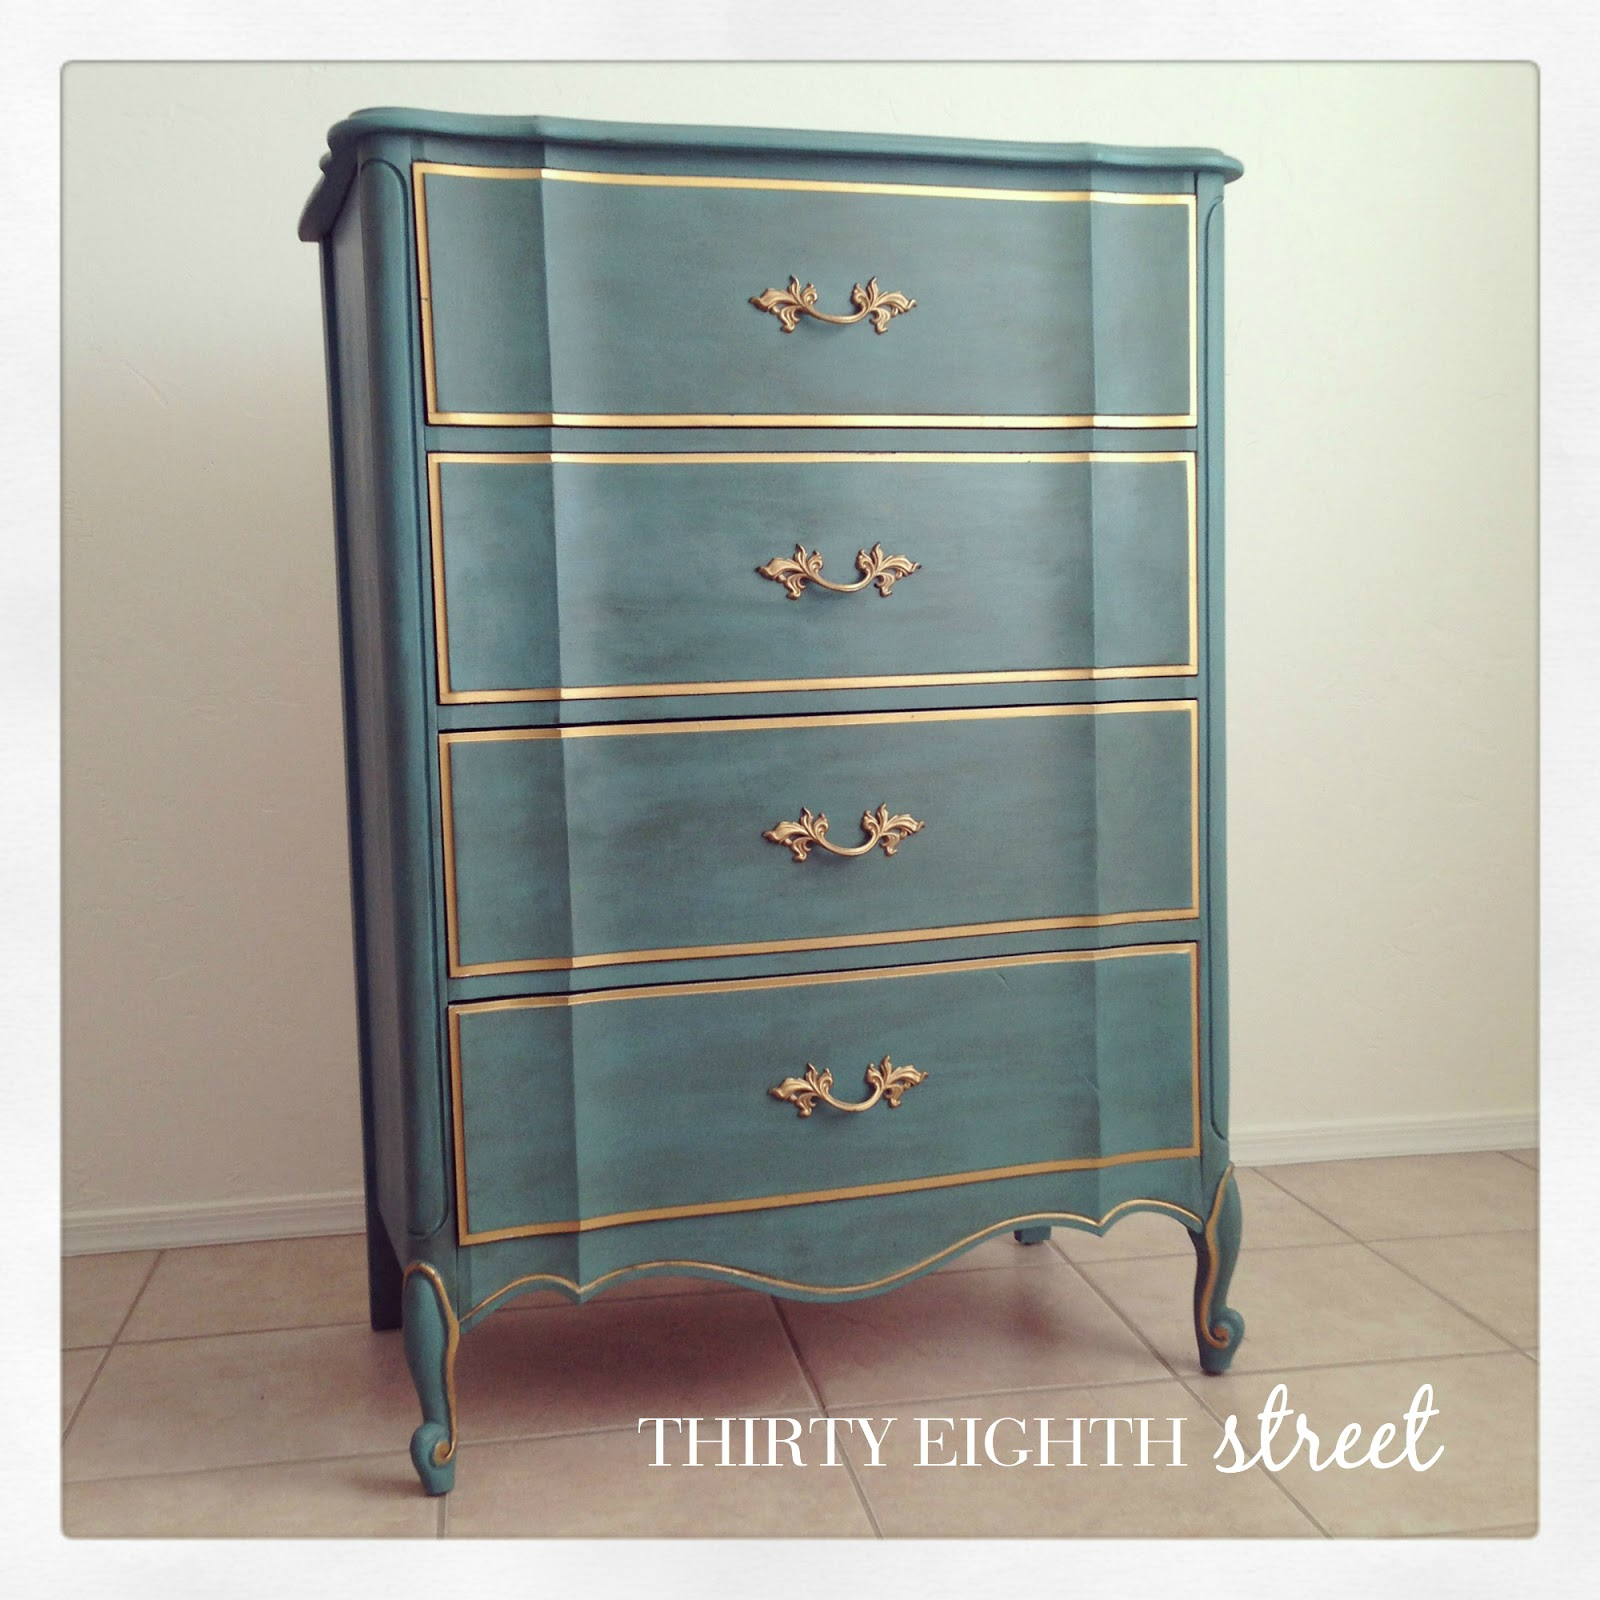 The Melinda Bedroom Collection - Thirty Eighth Street